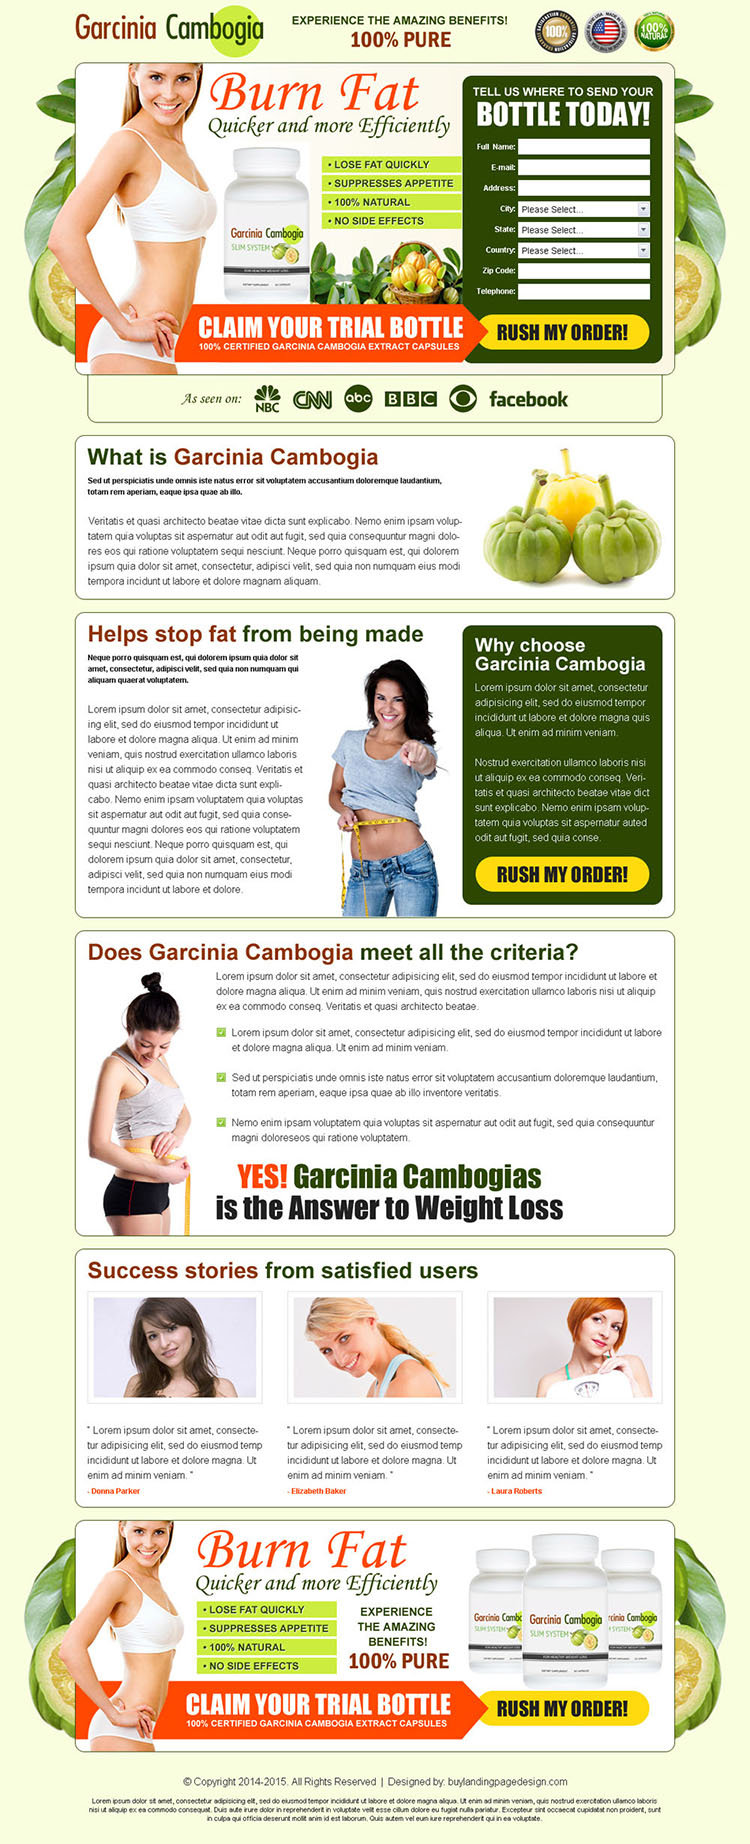 garcinia cambogia burn fat quickly and efficiently trial bottle lead gen page